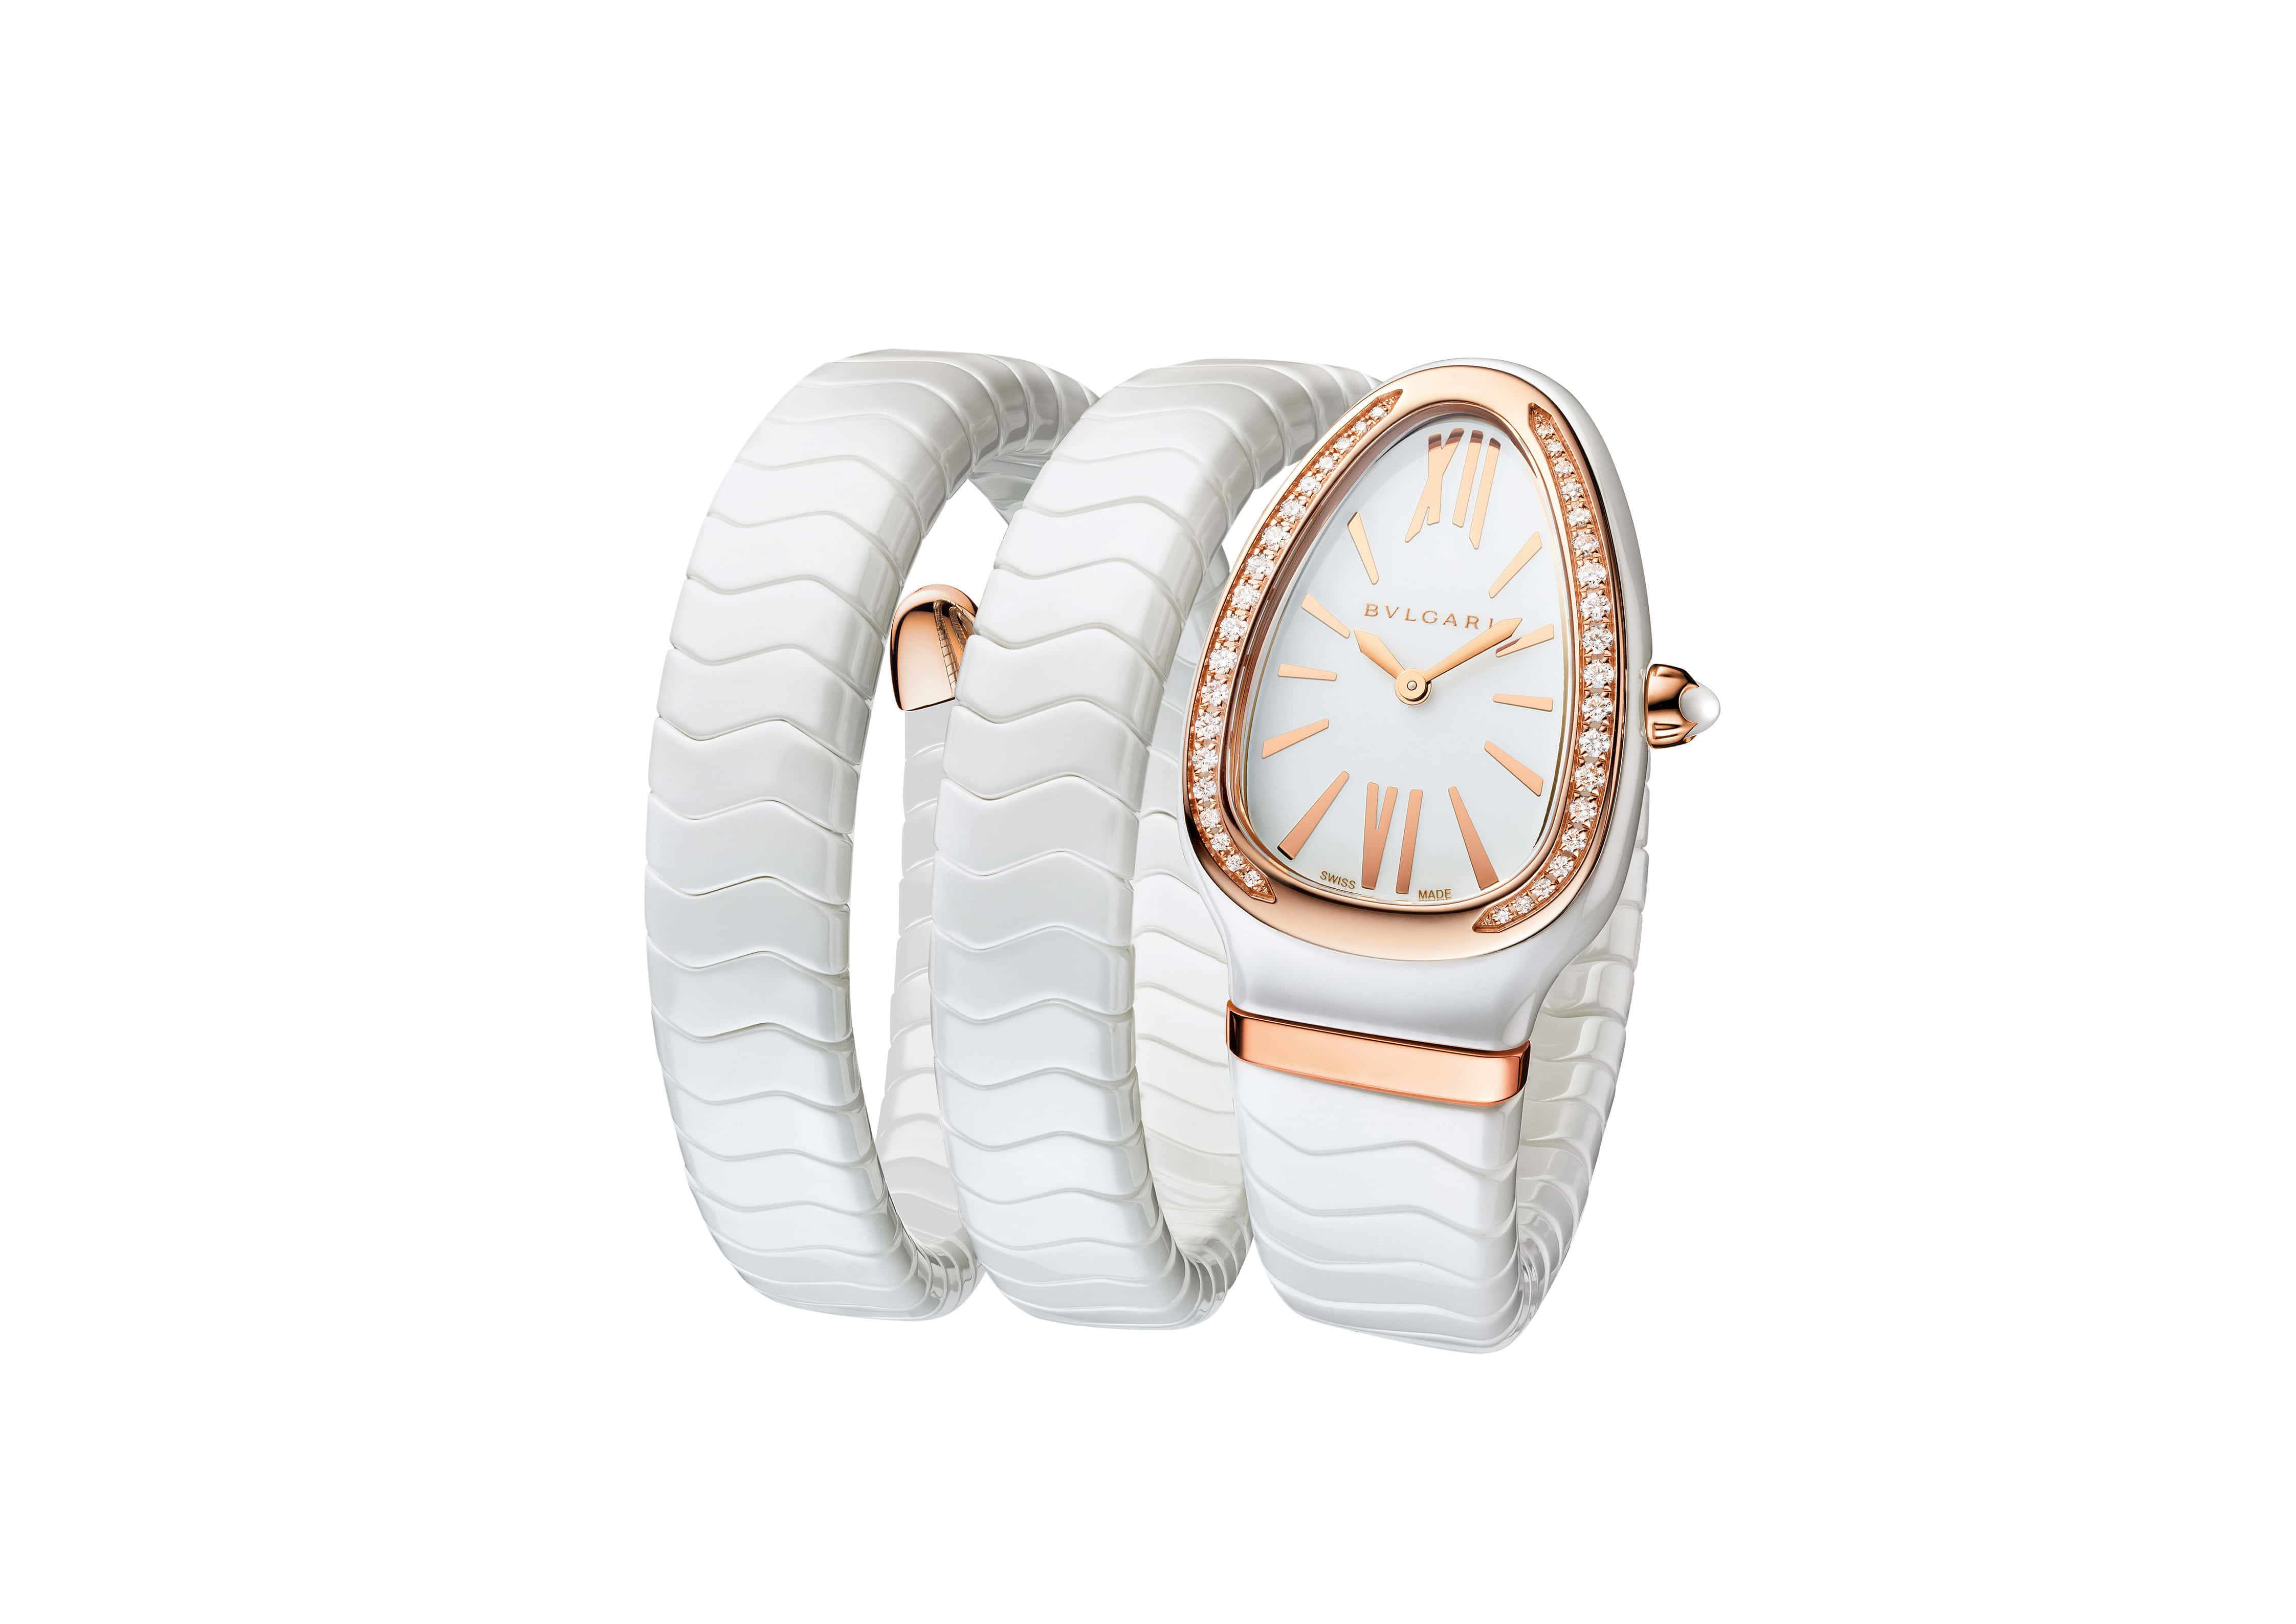 Bvlgari-Serpenti-Spiga-Double-Spiral-Watch-White-Lacquer-Rose-Gold.jpg